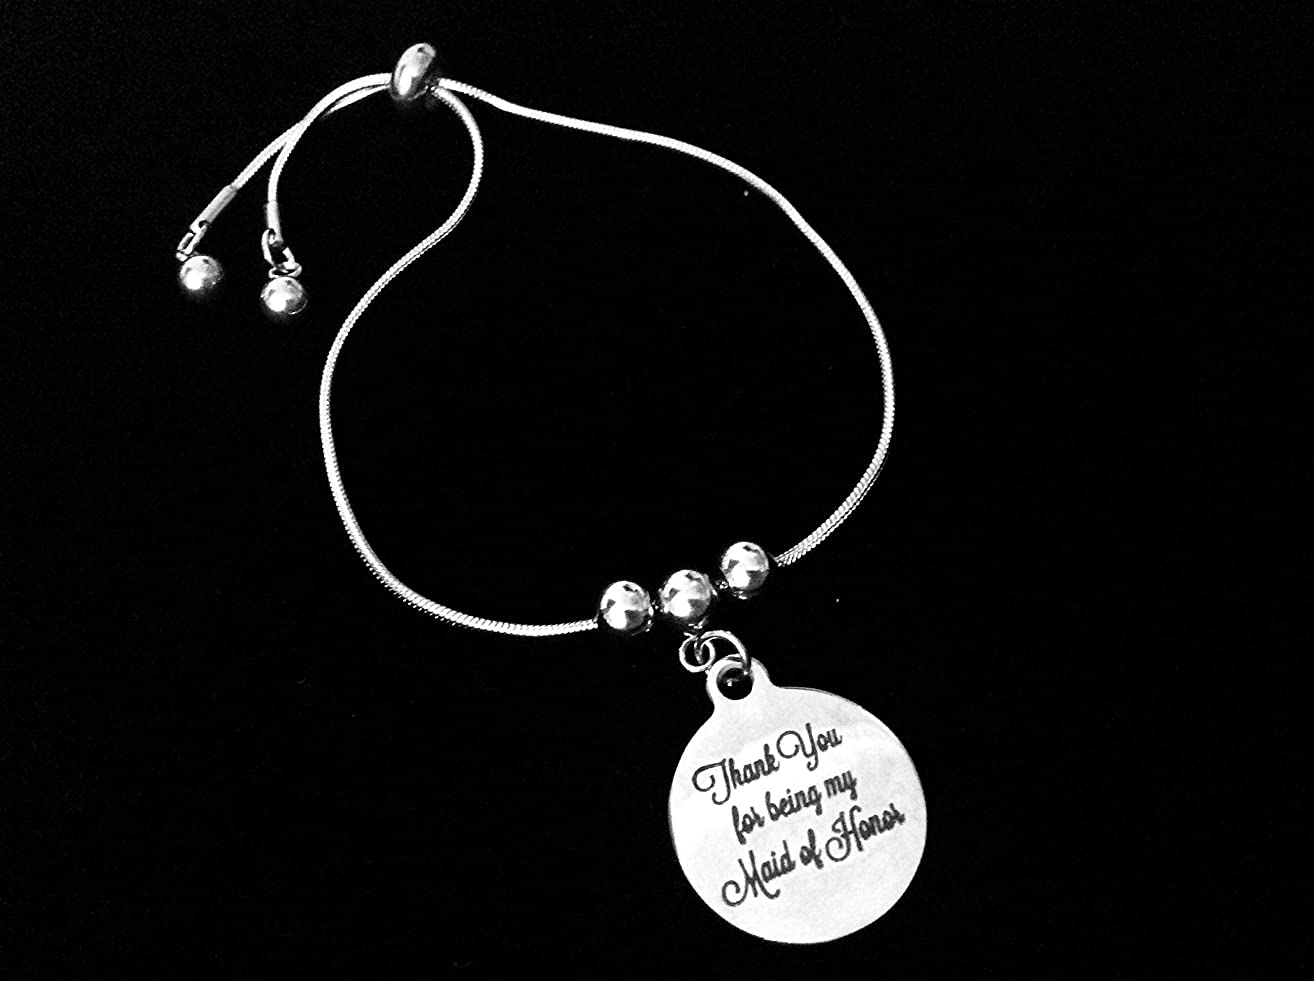 Thank You for Being My Maid Of Honor Bolo Bracelet Stainless Steel Adjustable Bracelet Slider Chain One Size Fits All Gift Wedding Party